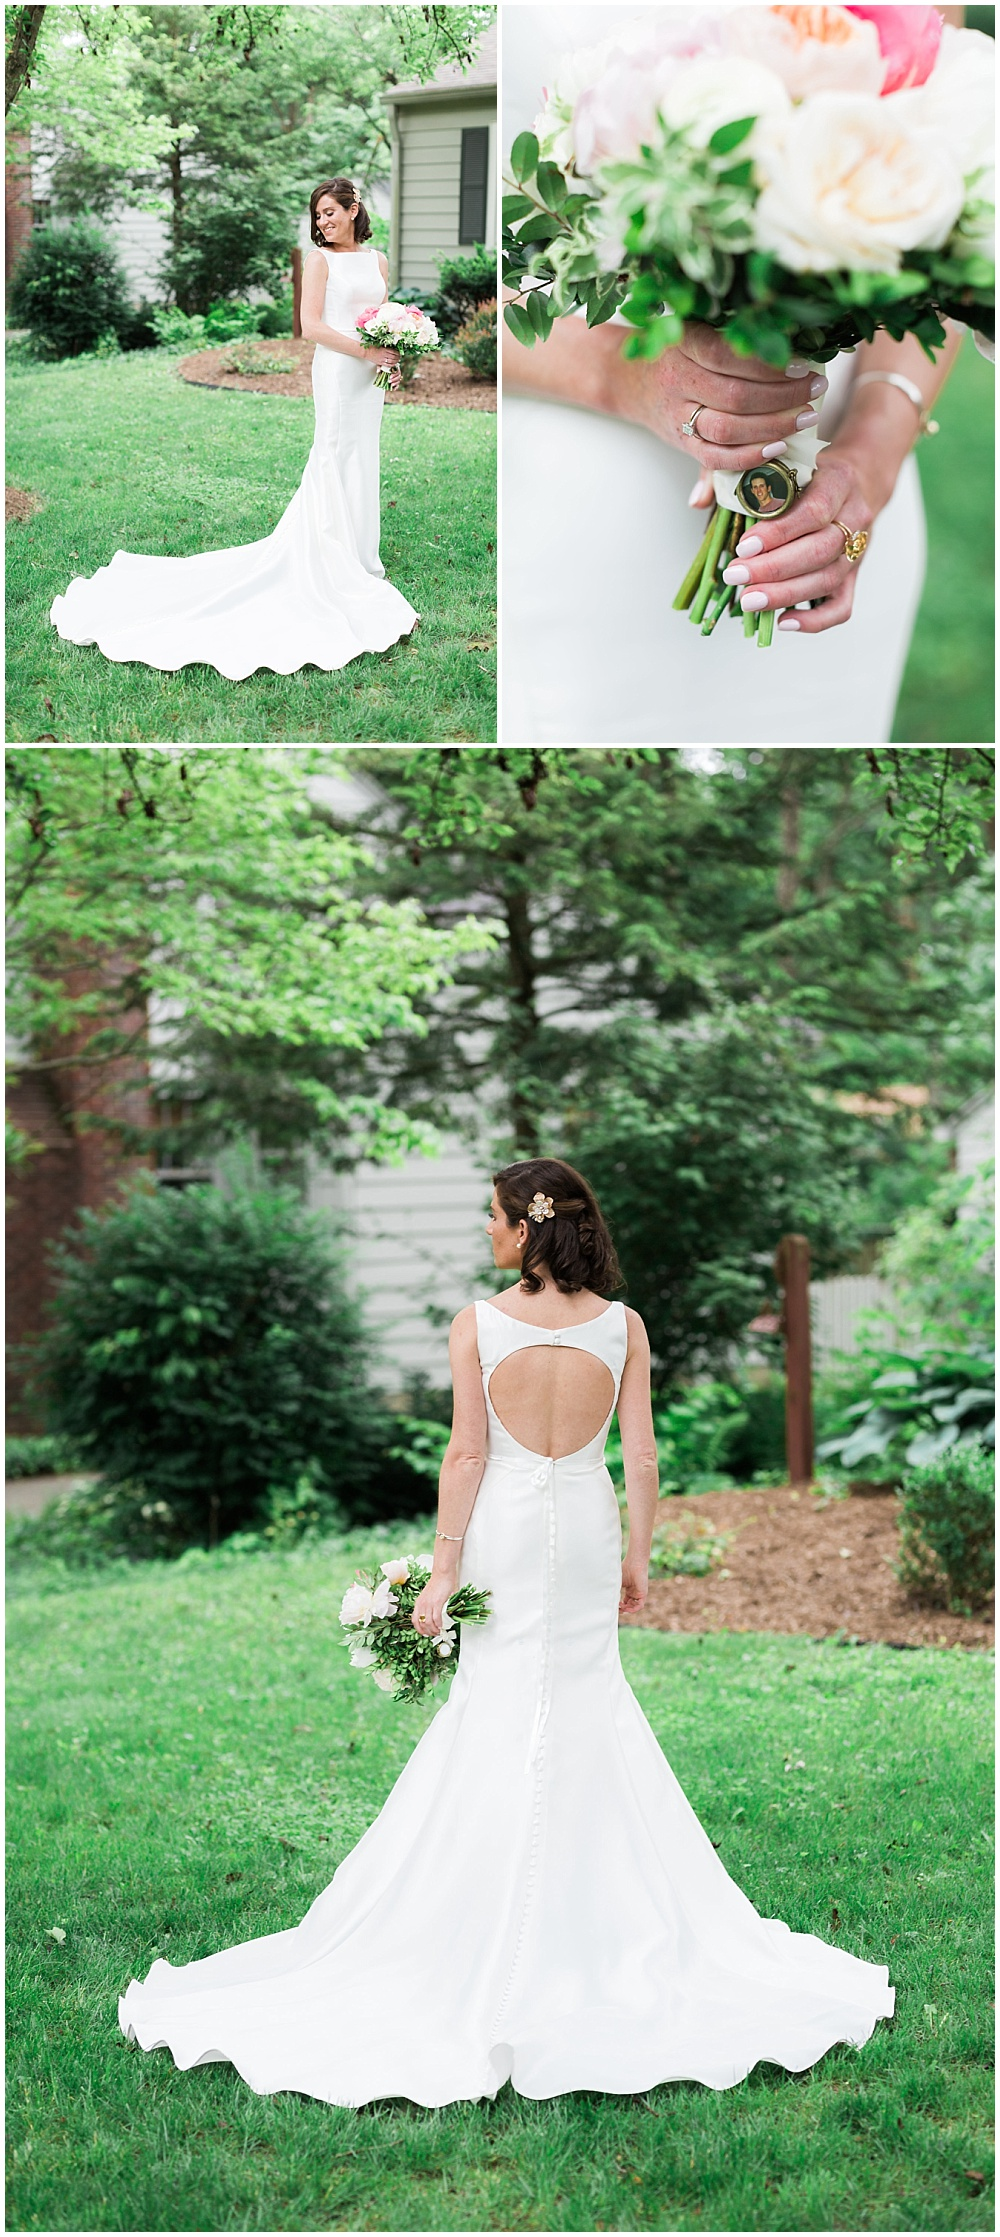 Bridal portraits with key-hole white wedding dress and a cape-cod inspired bridal bouquet. | Coral and navy Cape Cod-inspired downtown Indianapolis library wedding with Gaby Cheikh Photography and Jessica Dum Wedding Coordination